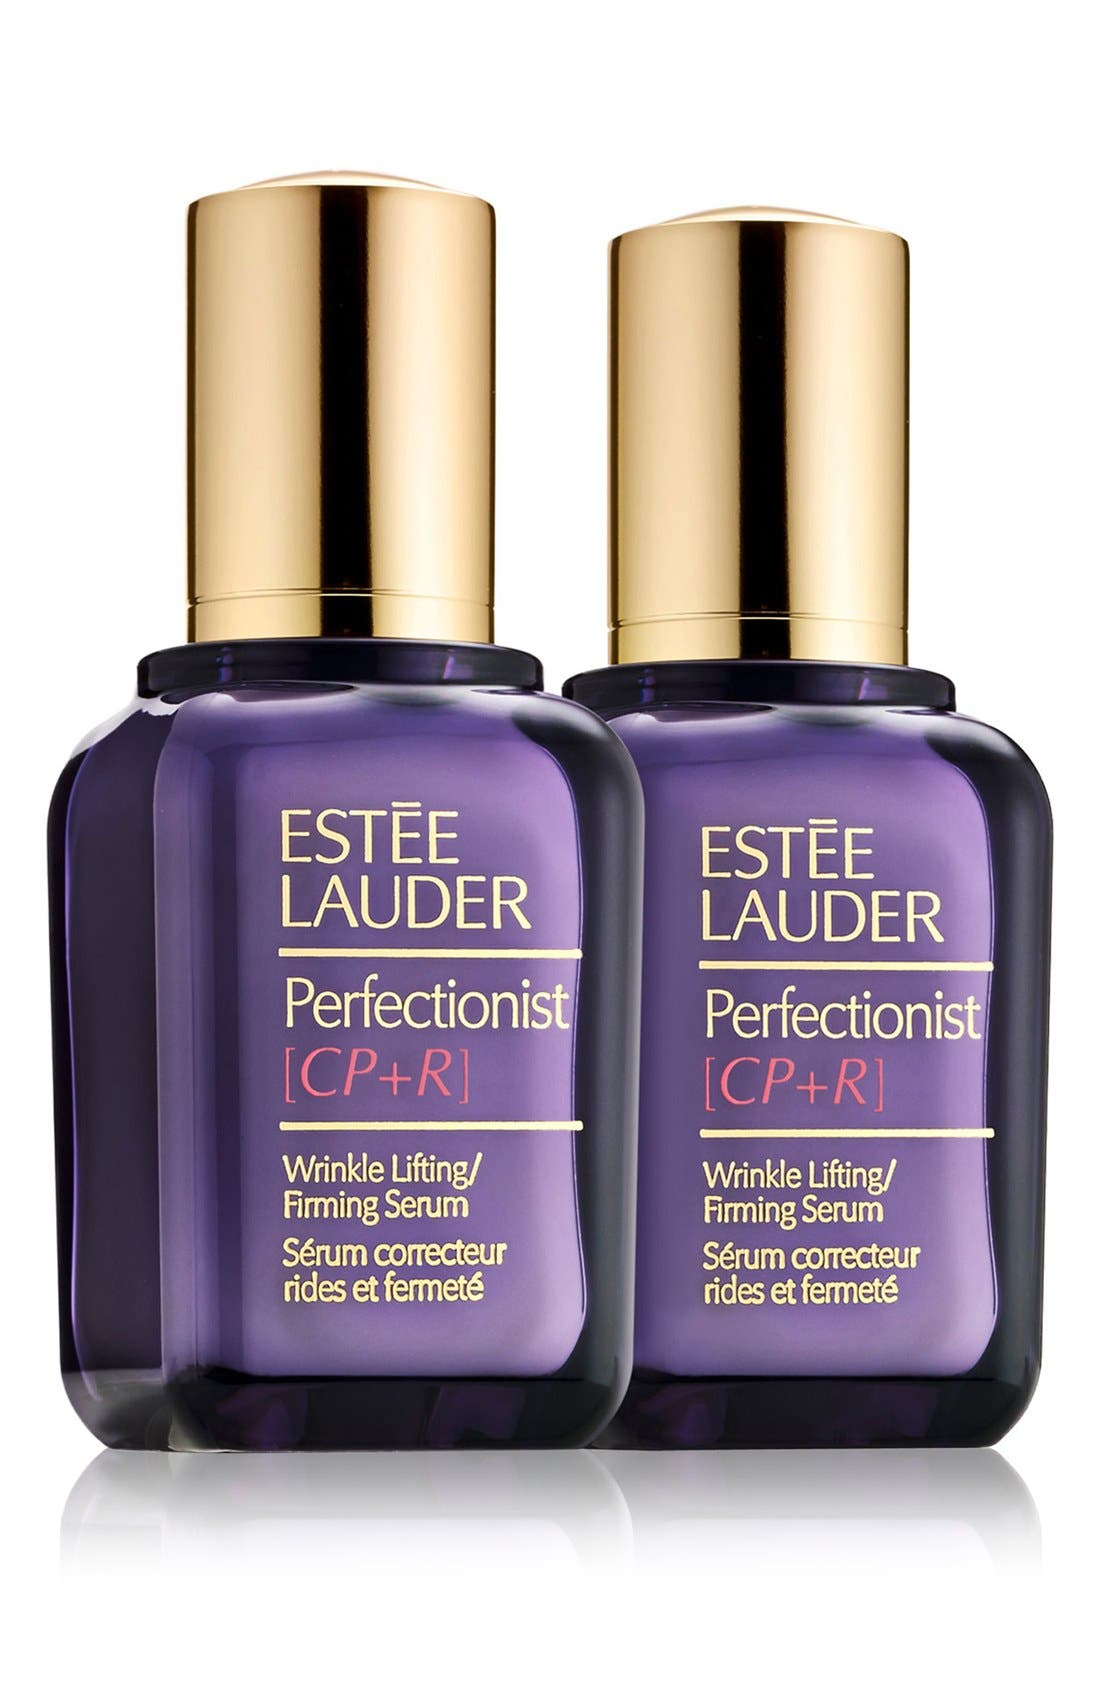 Estée Lauder Perfectionist [CP+R] Wrinkle Lifting/Firming Serum Duo (Limited Edition) ($196 Value)